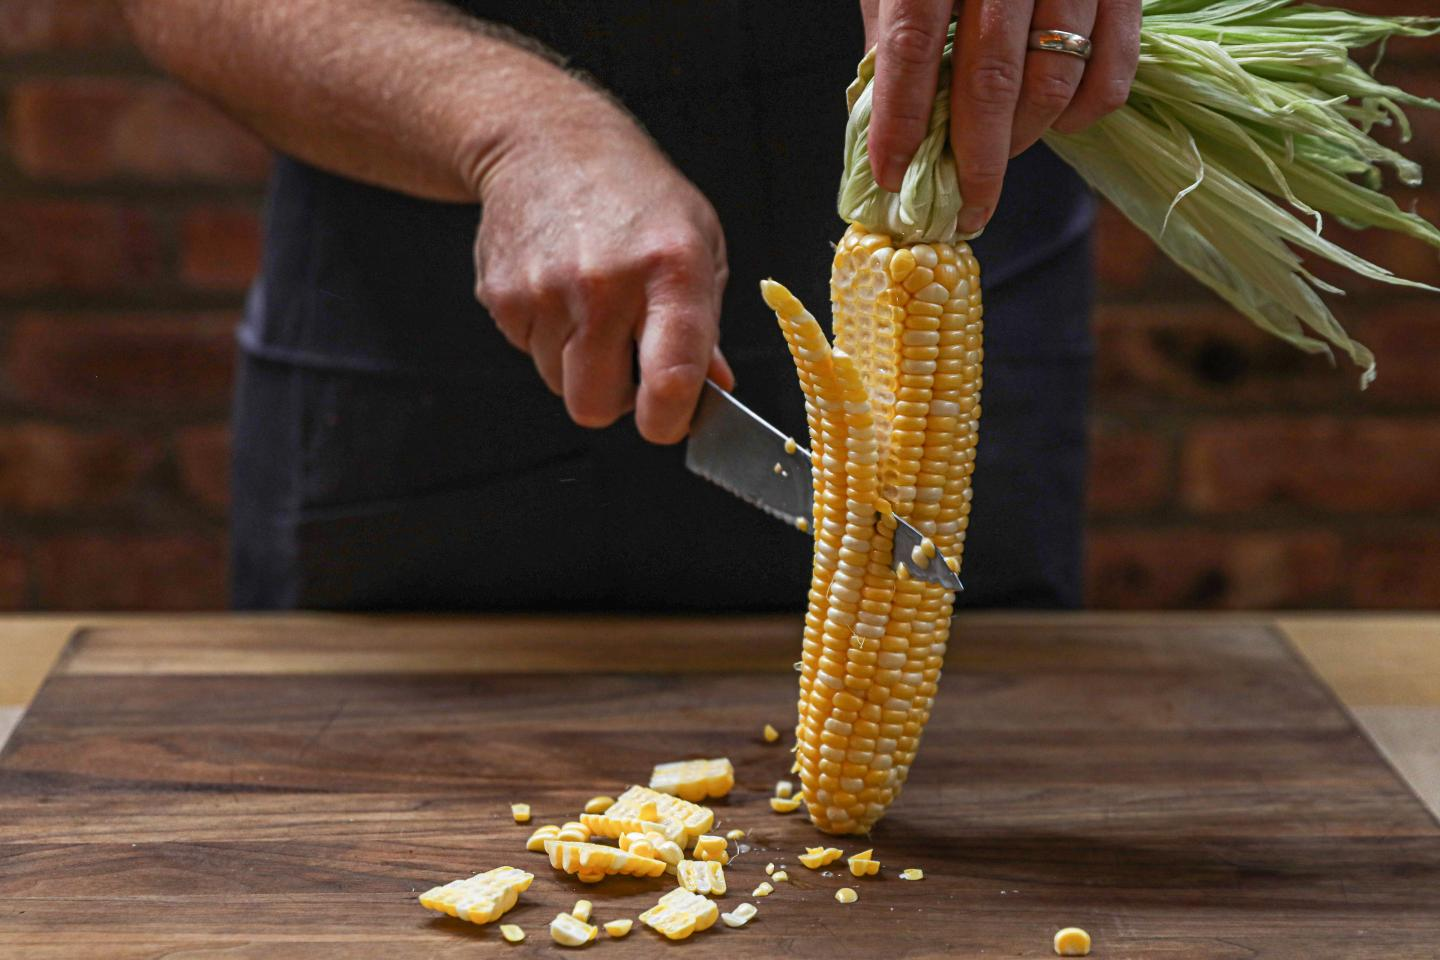 pickling corn chow summer house edited